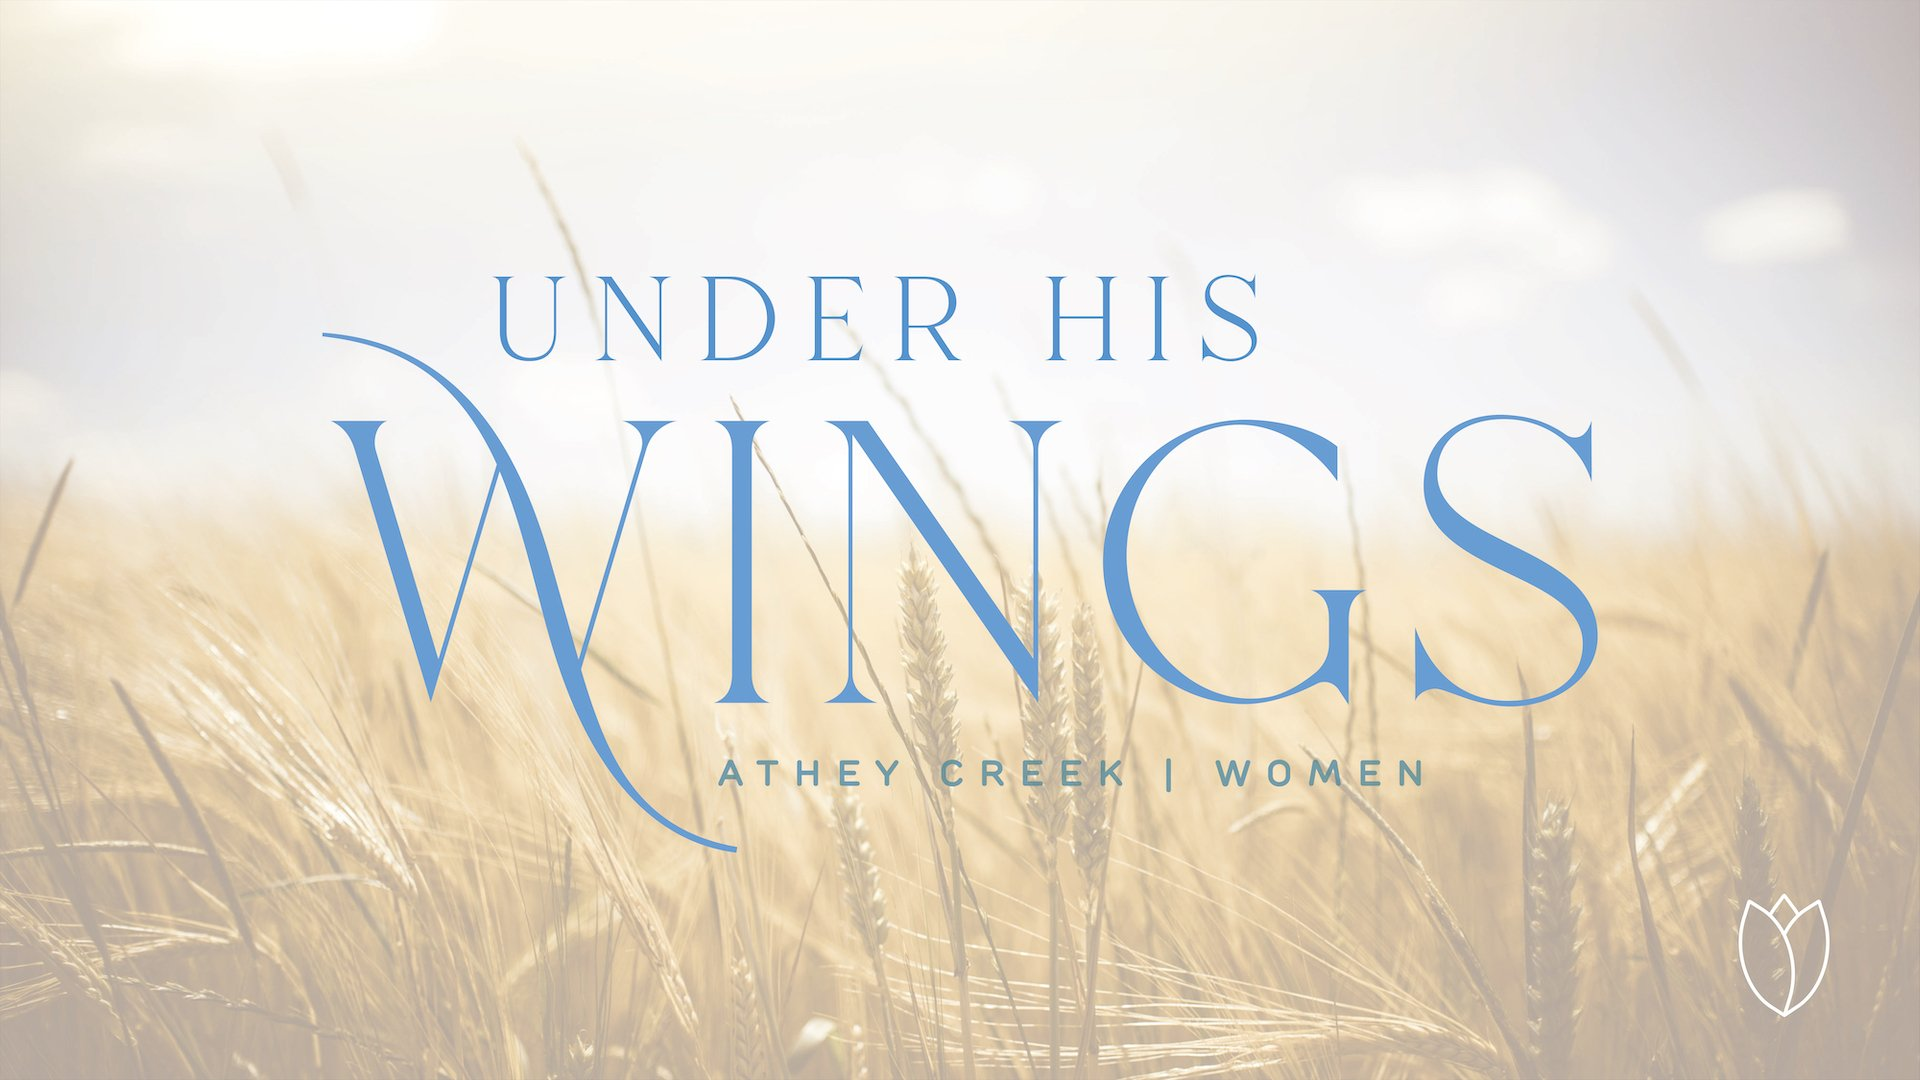 Teaching artwork for Under His Wings